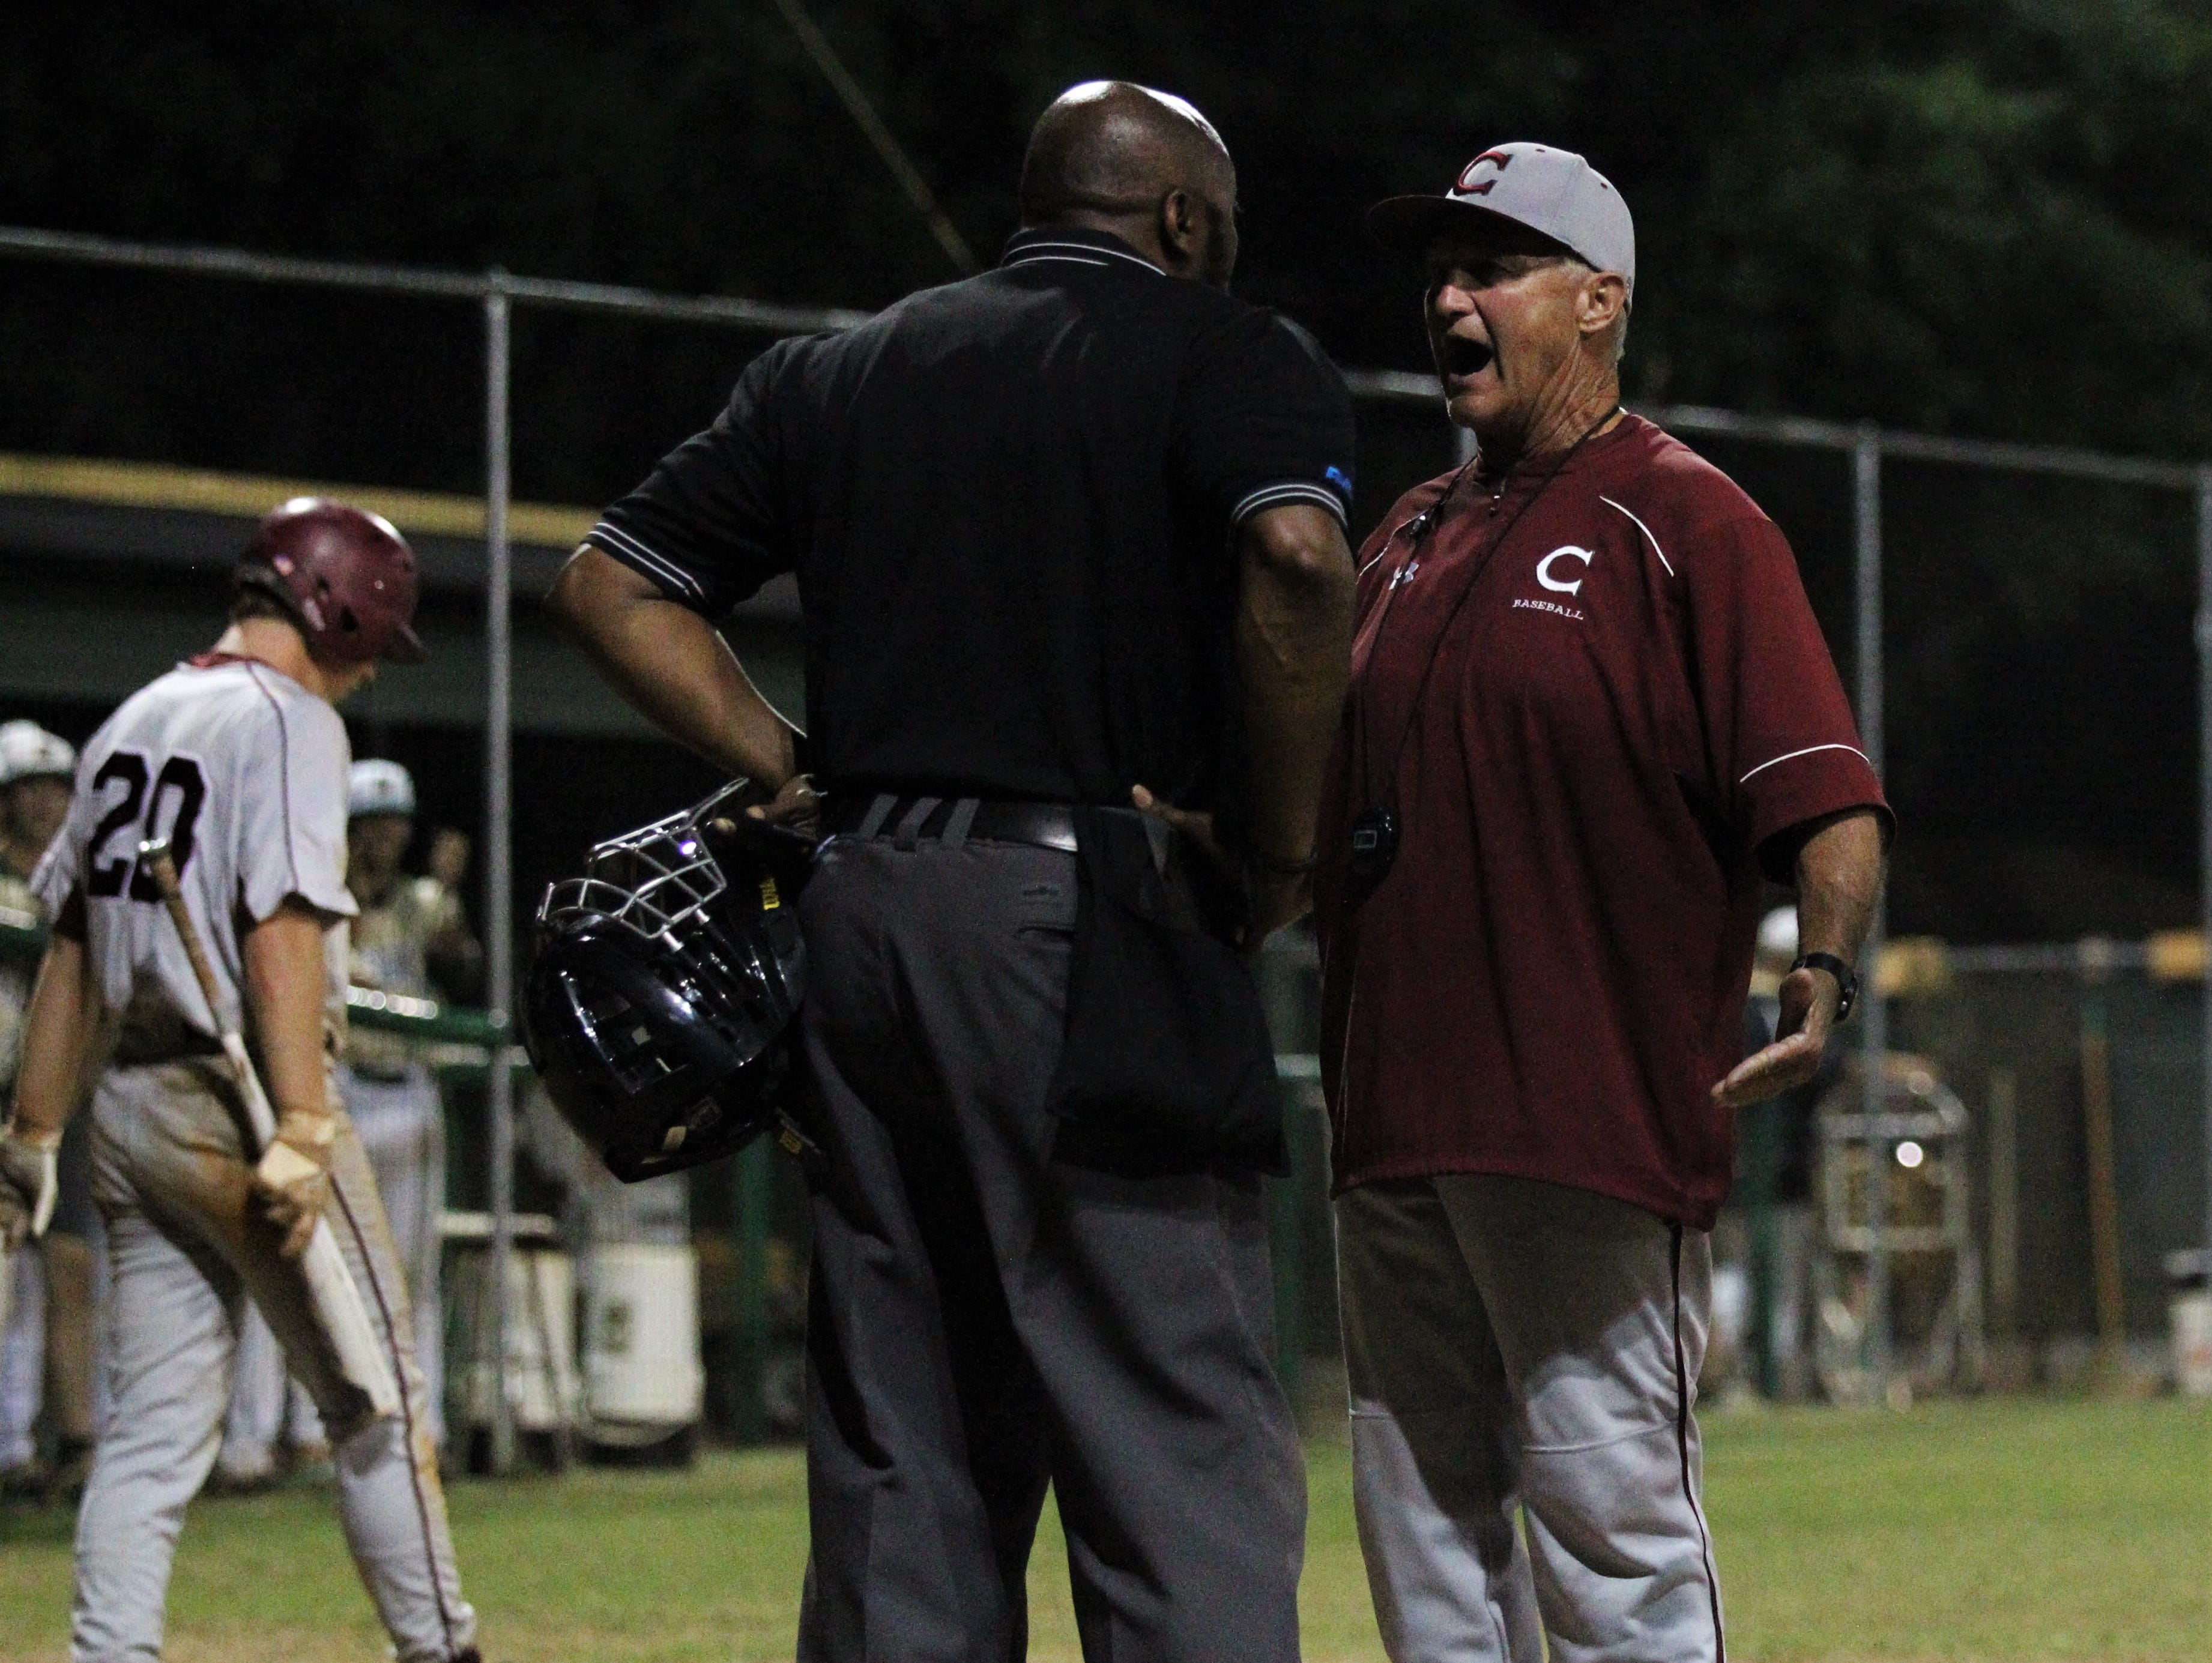 Chiles baseball coach Dick Steed argues with the home plate umpire as Lincoln baseball beat Chiles 5-4  in 10 innings during a District 2-8A championship game on Thursday, May 9, 2019.